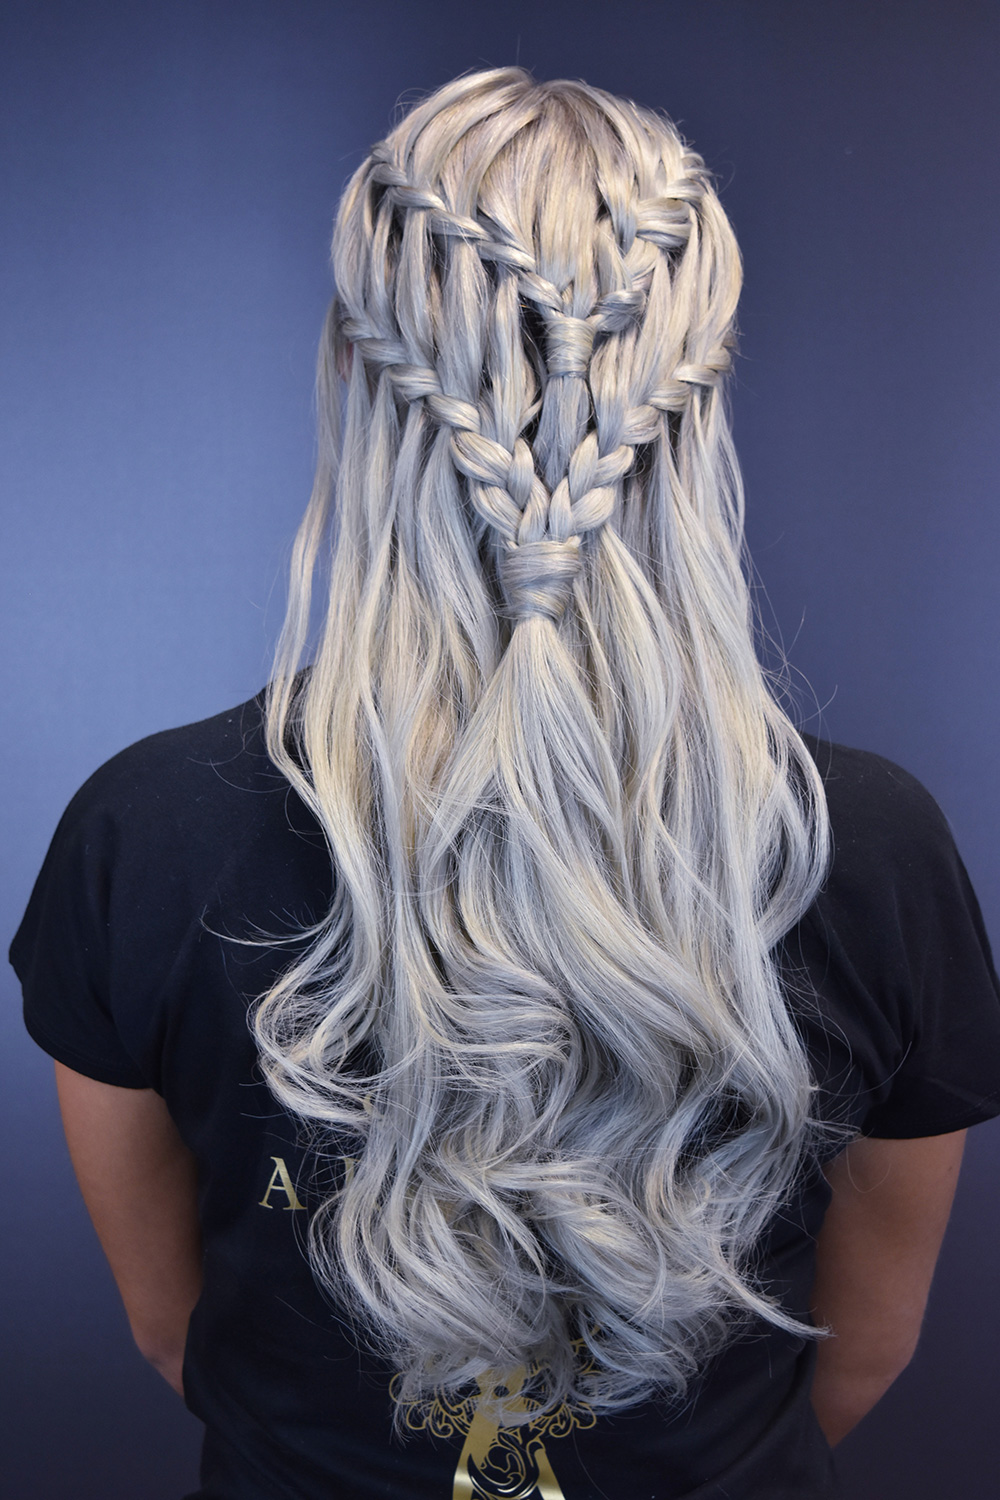 Game Of Thrones Inspired Braids By Great Lengths HJI